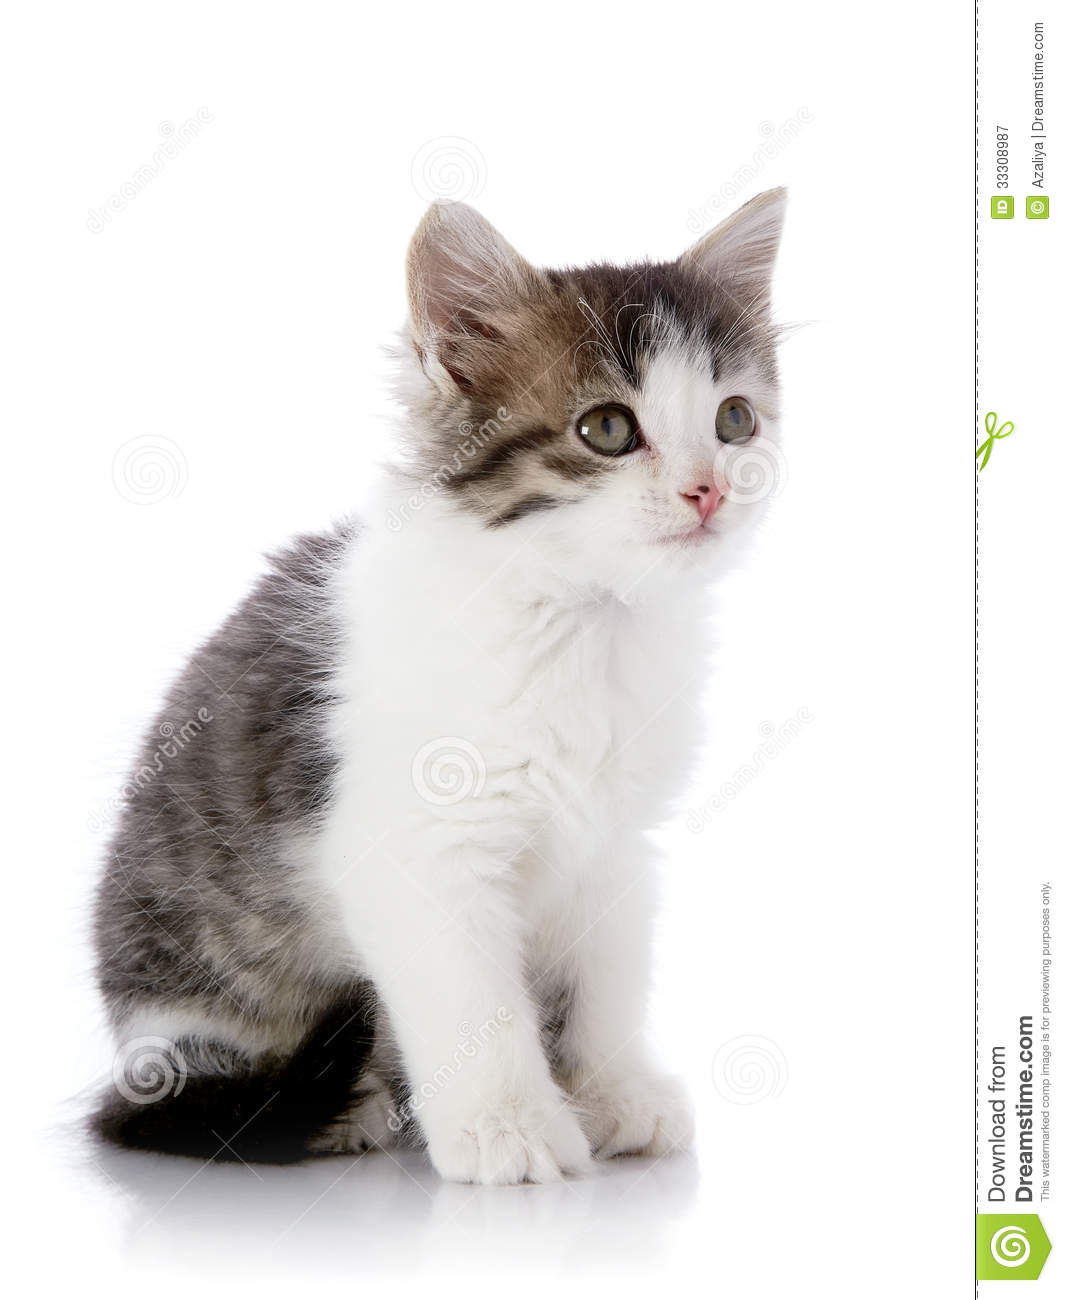 Cute Names For Silver Cats